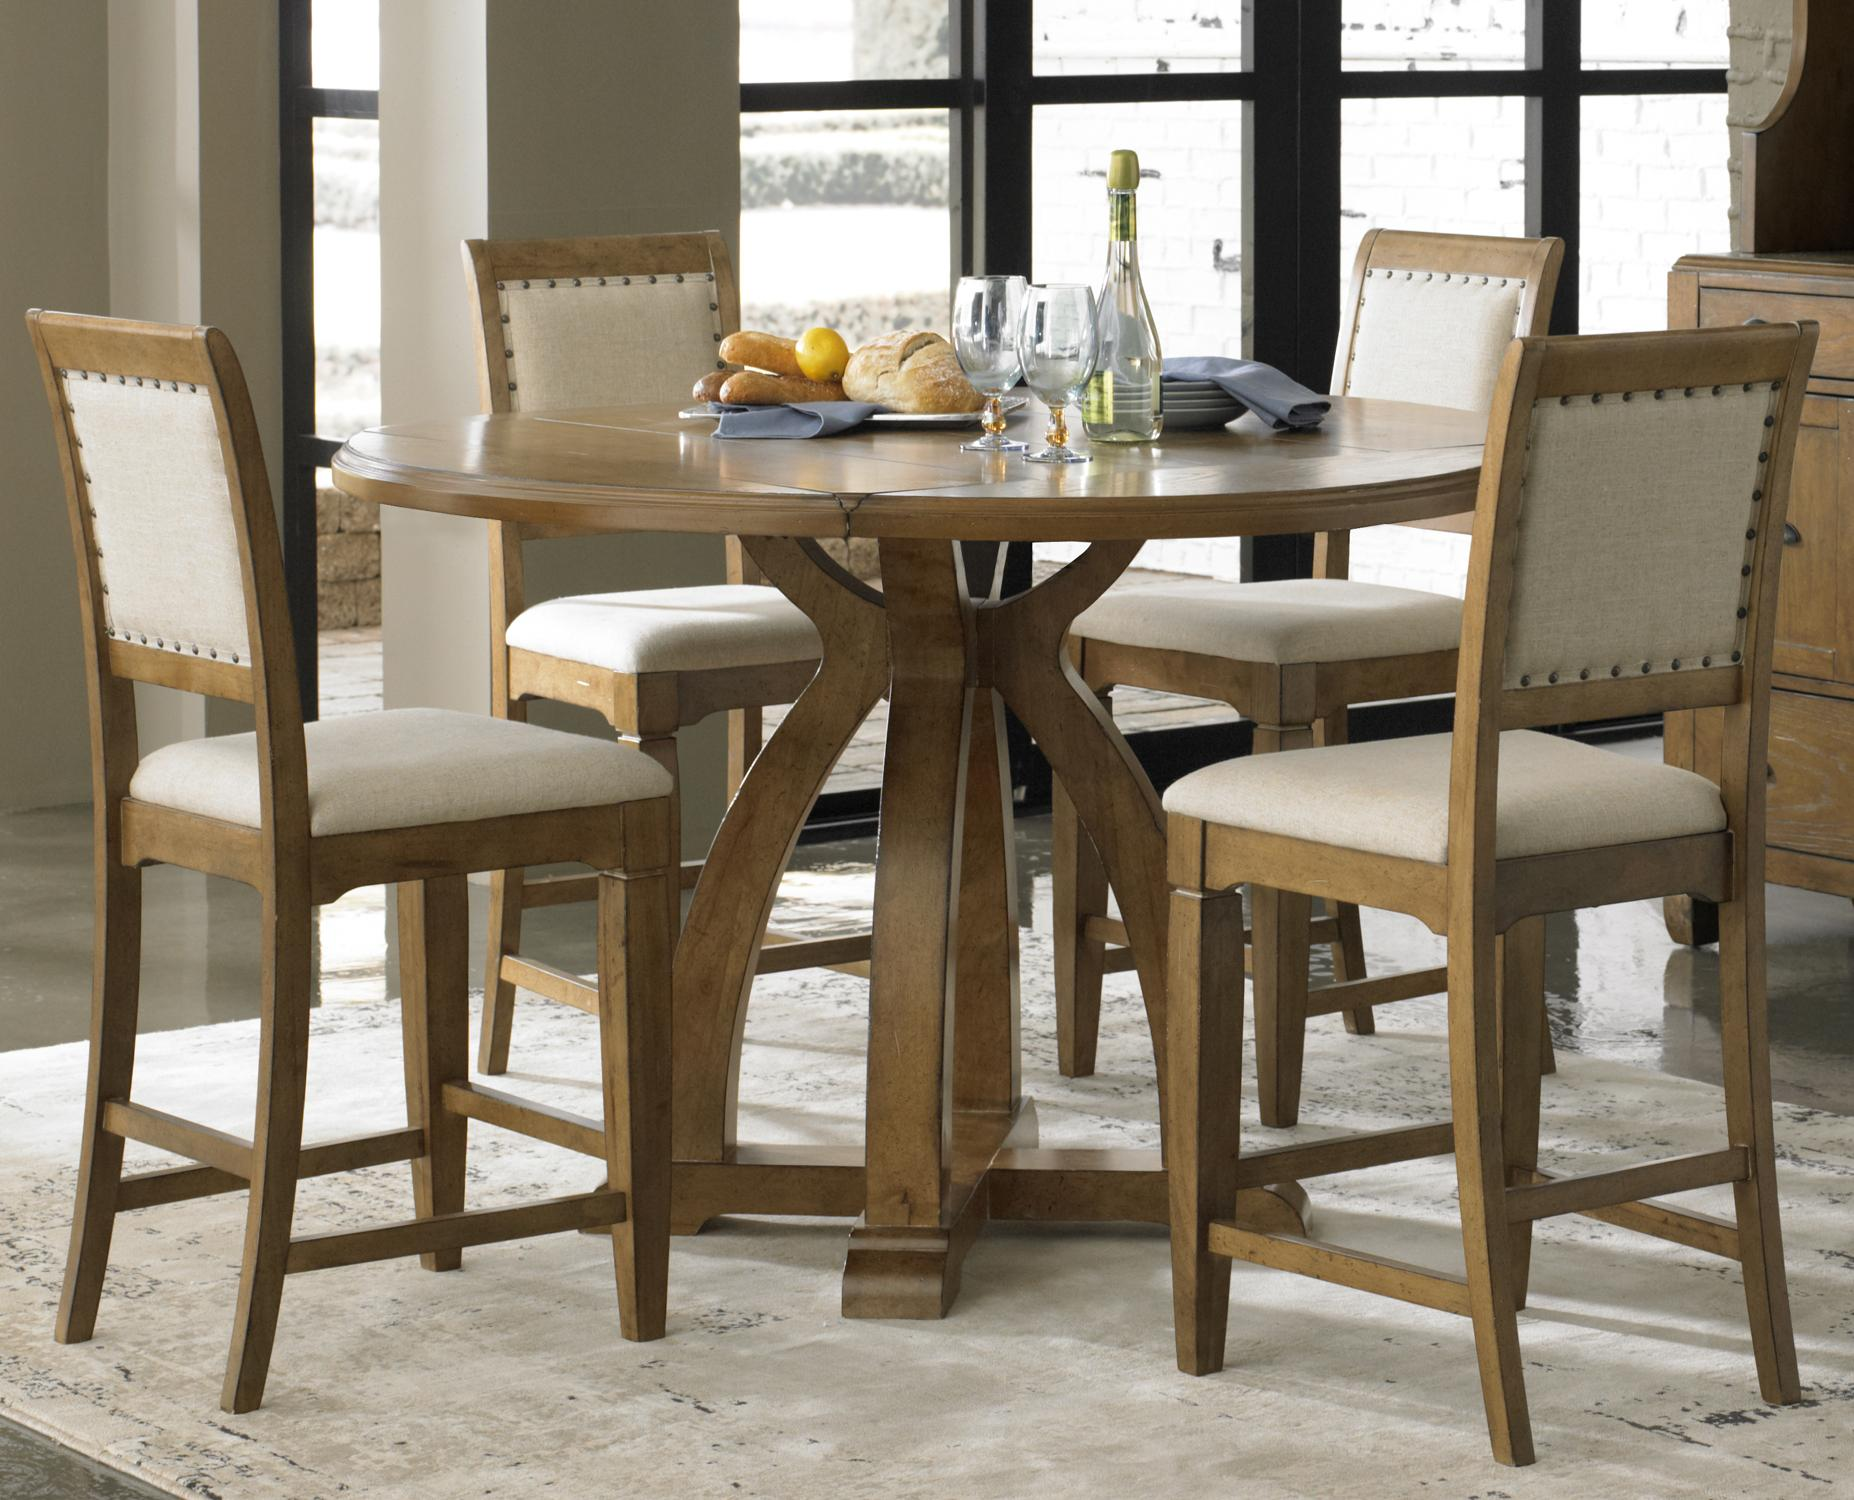 5 Piece Gathering Table Set With 4 Upholstered Counter Height Chairs